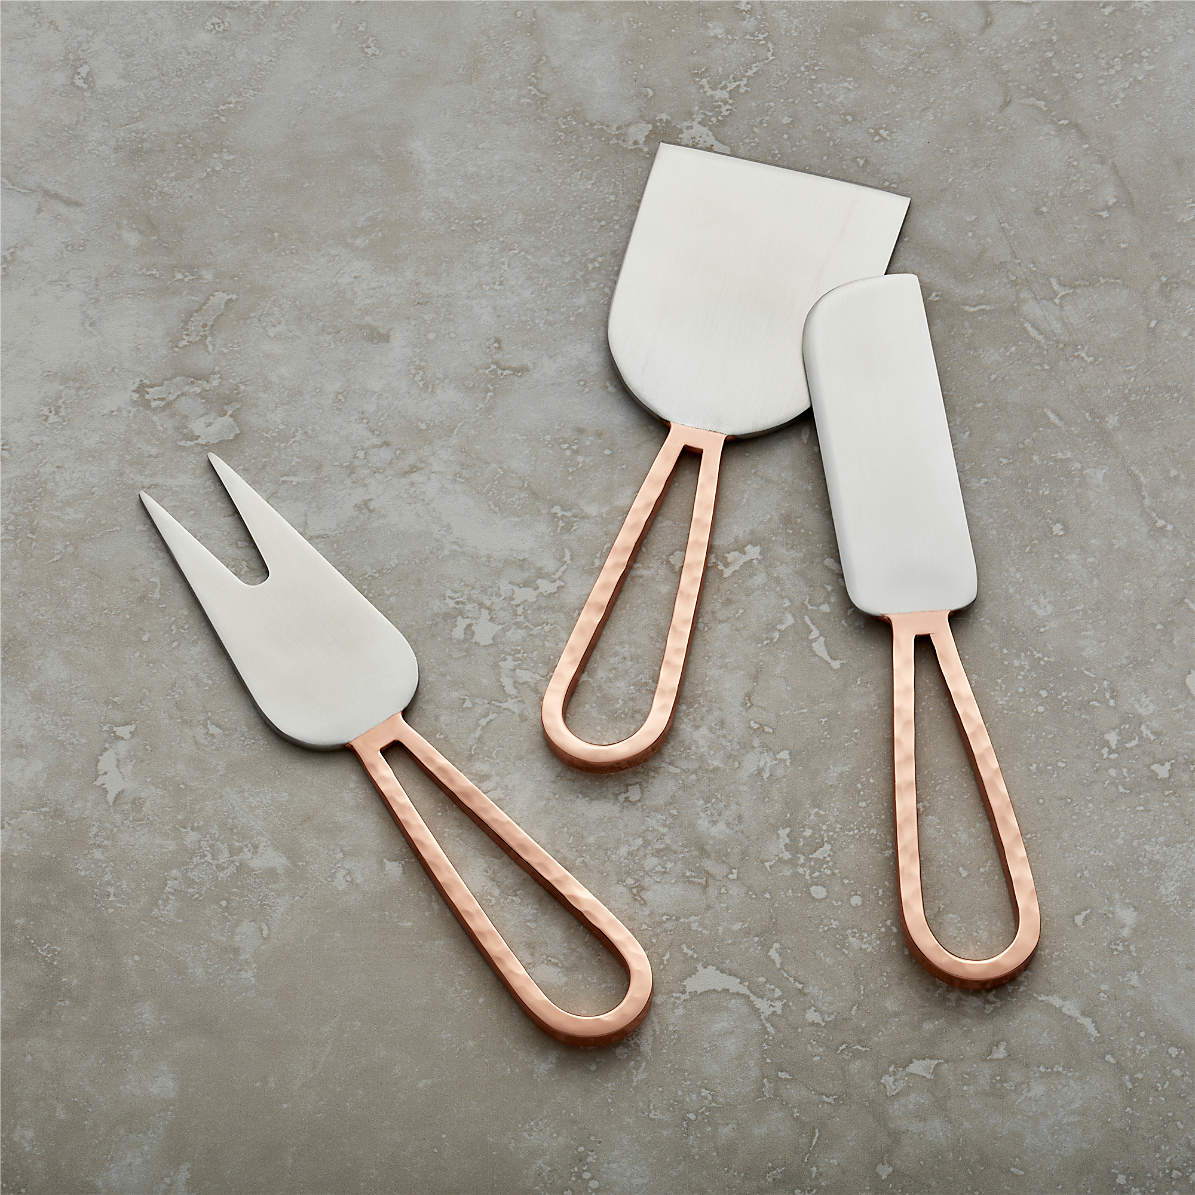 Copper Cheese Knives Crate And Barrel